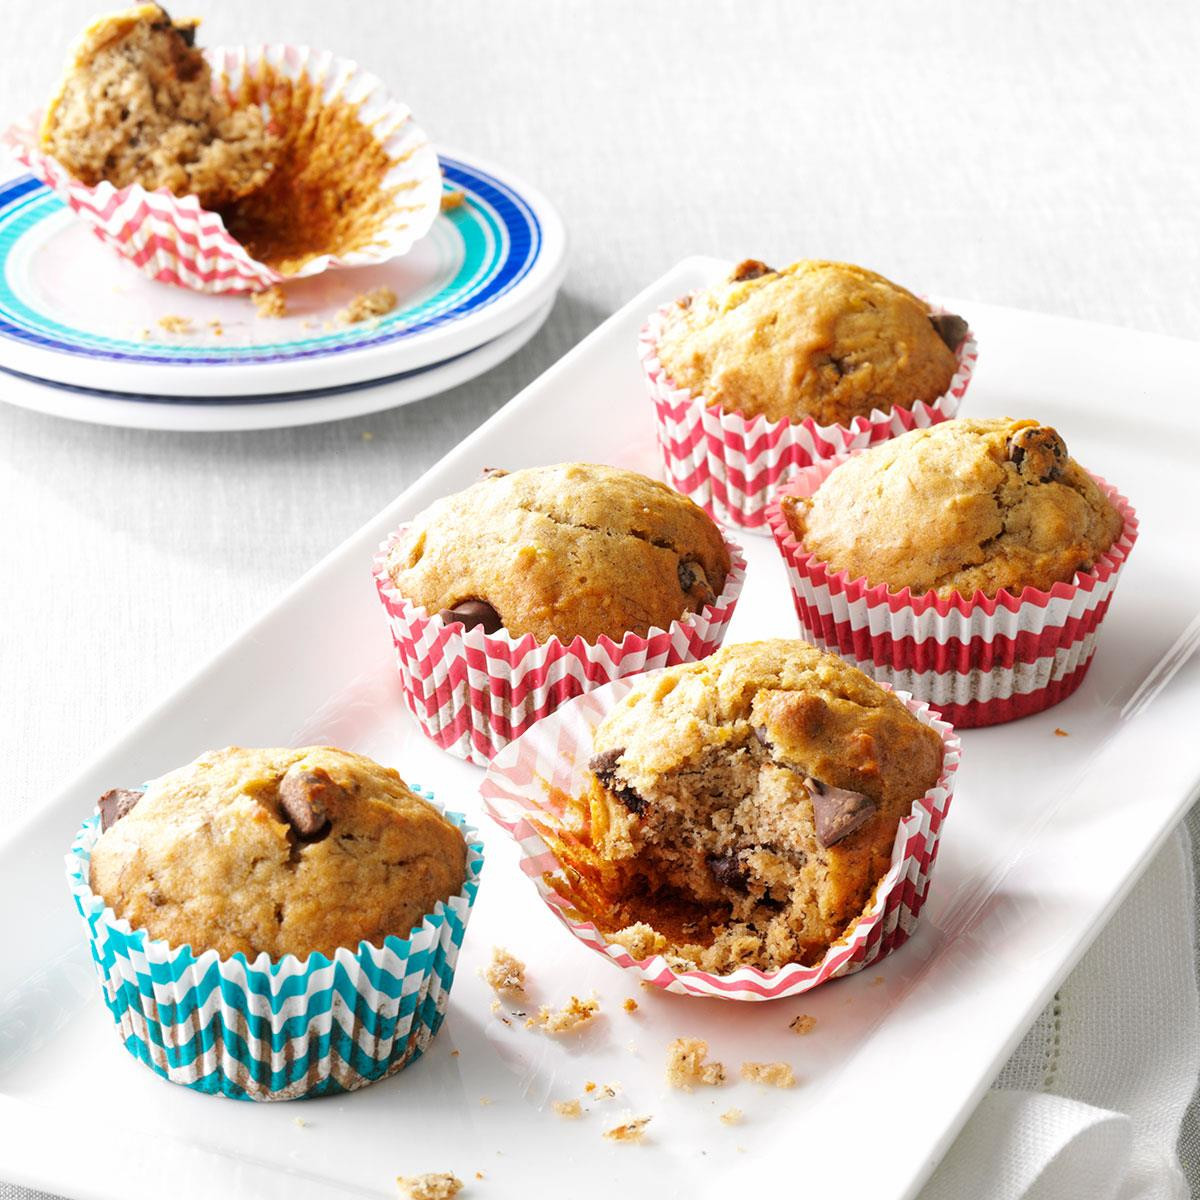 Healthy Snacks At Home  Favorite Banana Chip Muffins Recipe